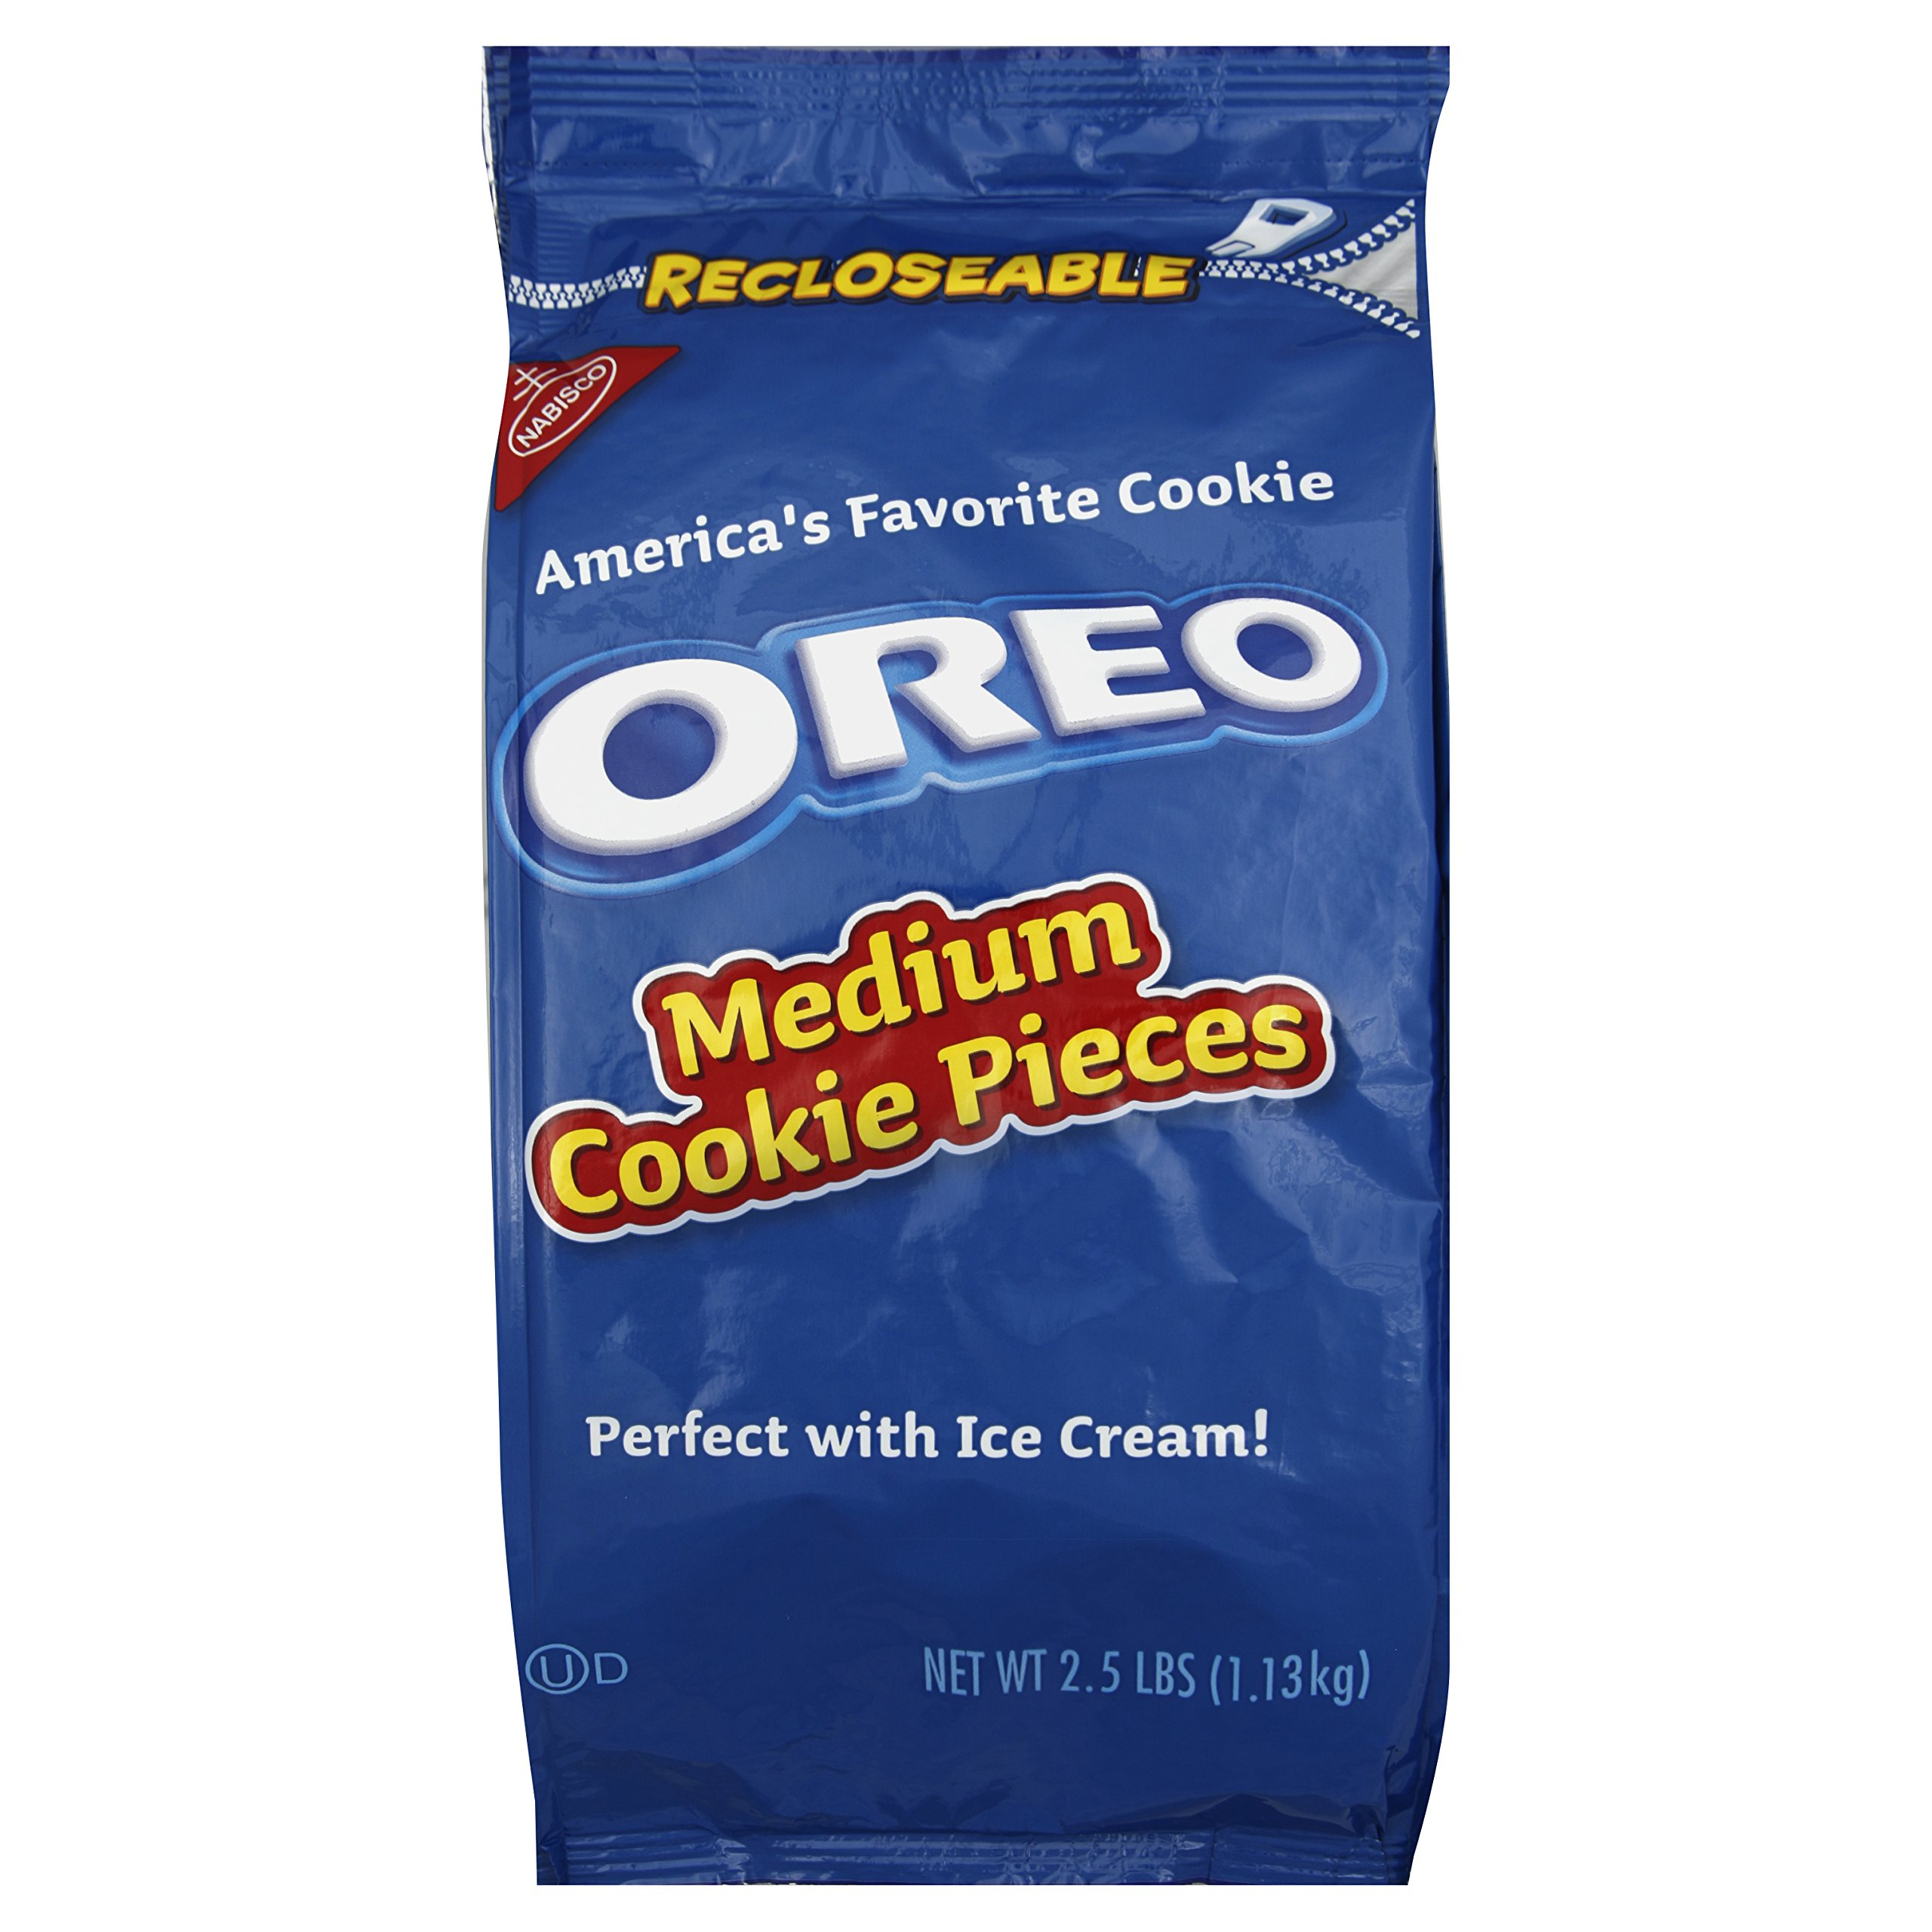 Oreo Medium Cookie Pieces, 2.5-Pound Resealable Packages (Pack of 4) by Oreo